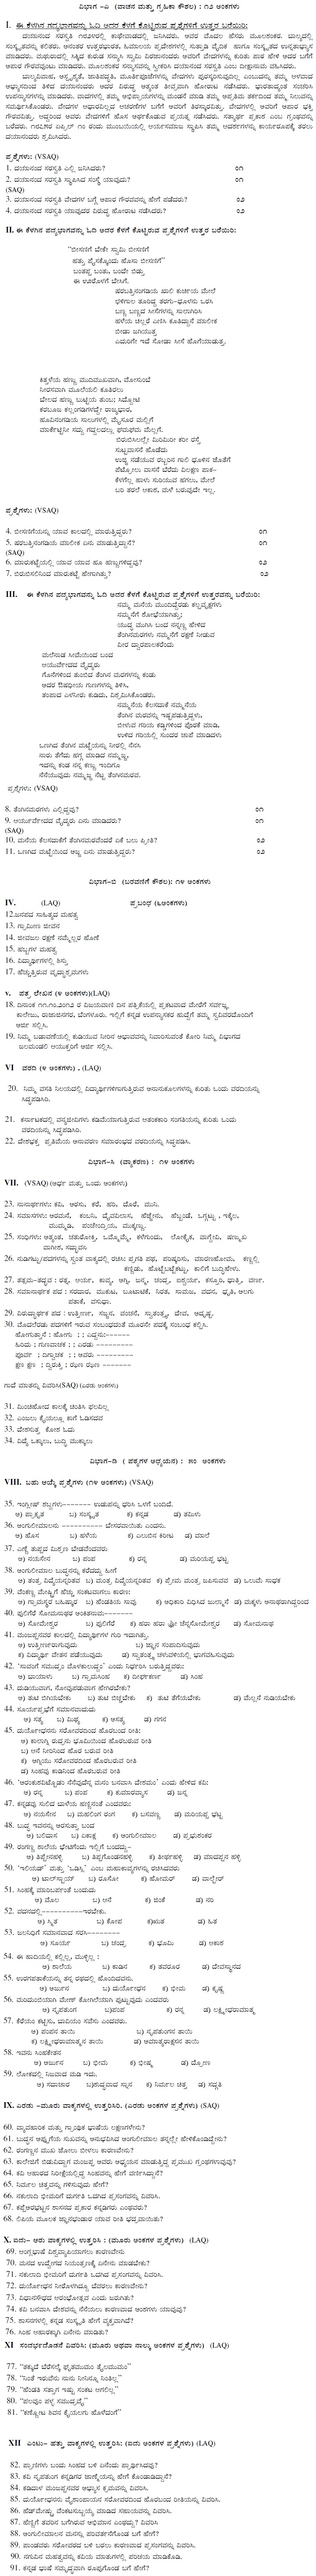 CBSE Class 10 Question Bank - Kannada